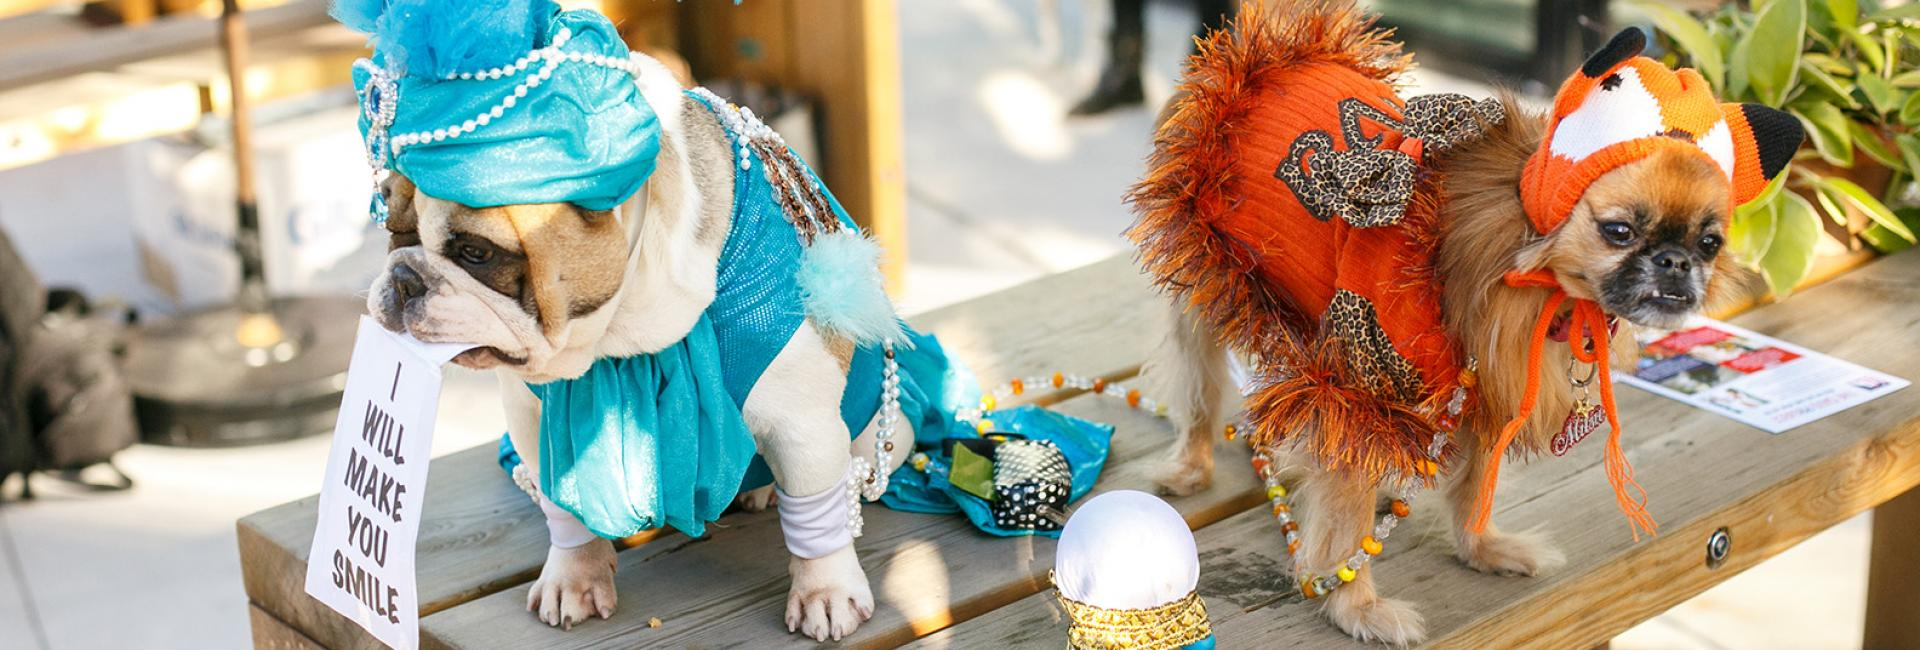 Two small dogs in fortune teller costumes